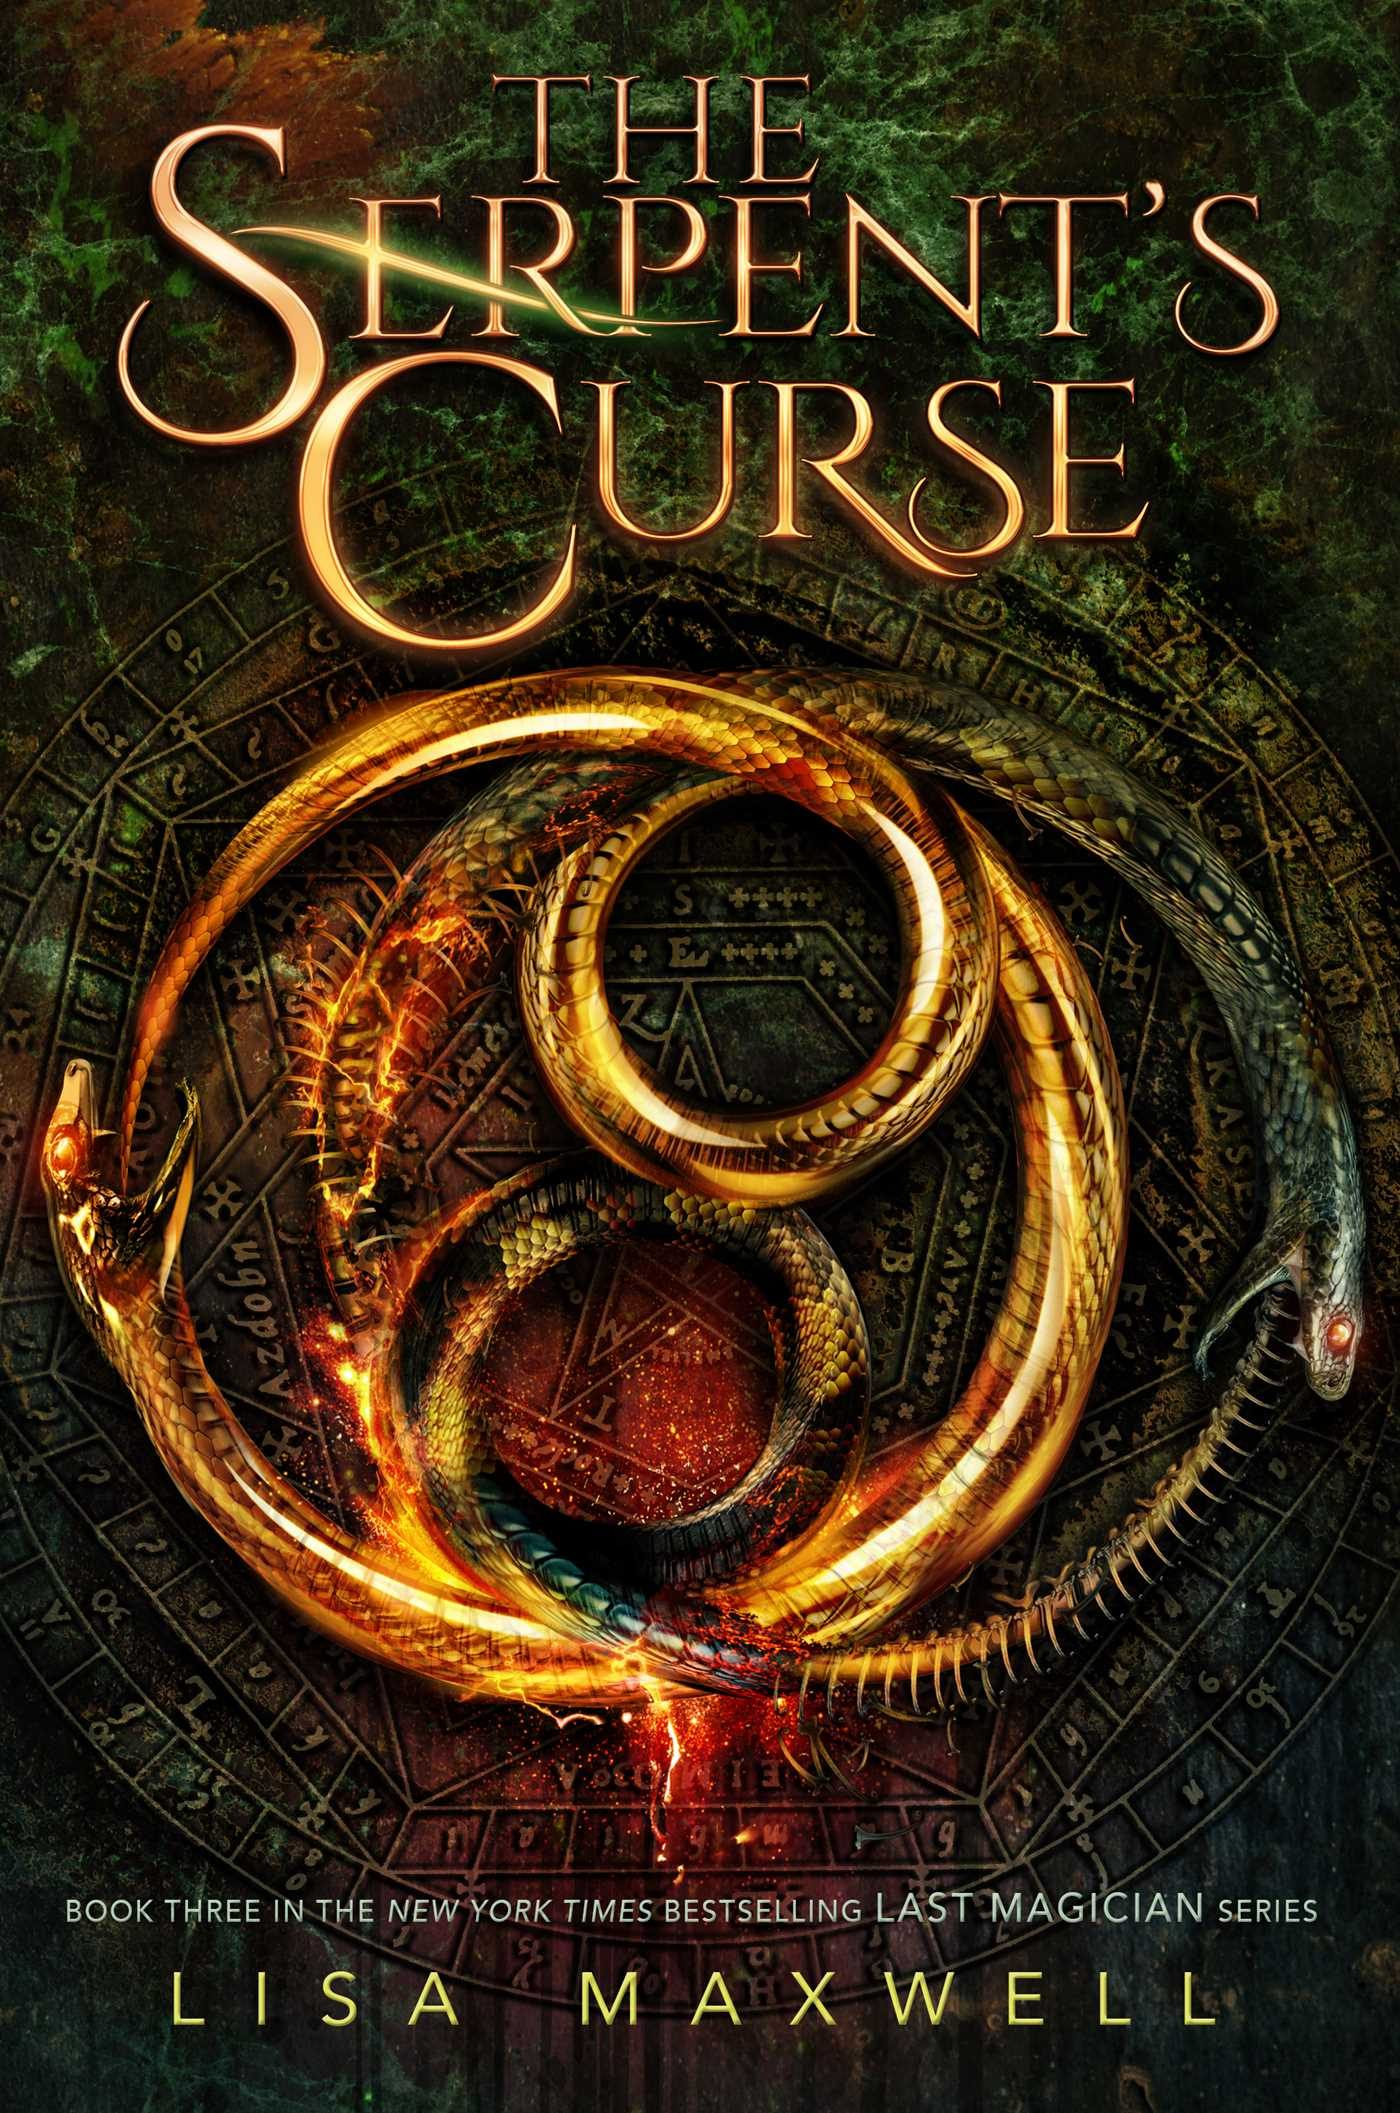 When Does The Serpent's Curse Come Out? 2021 YA Fantasy & Historical Fiction Releases